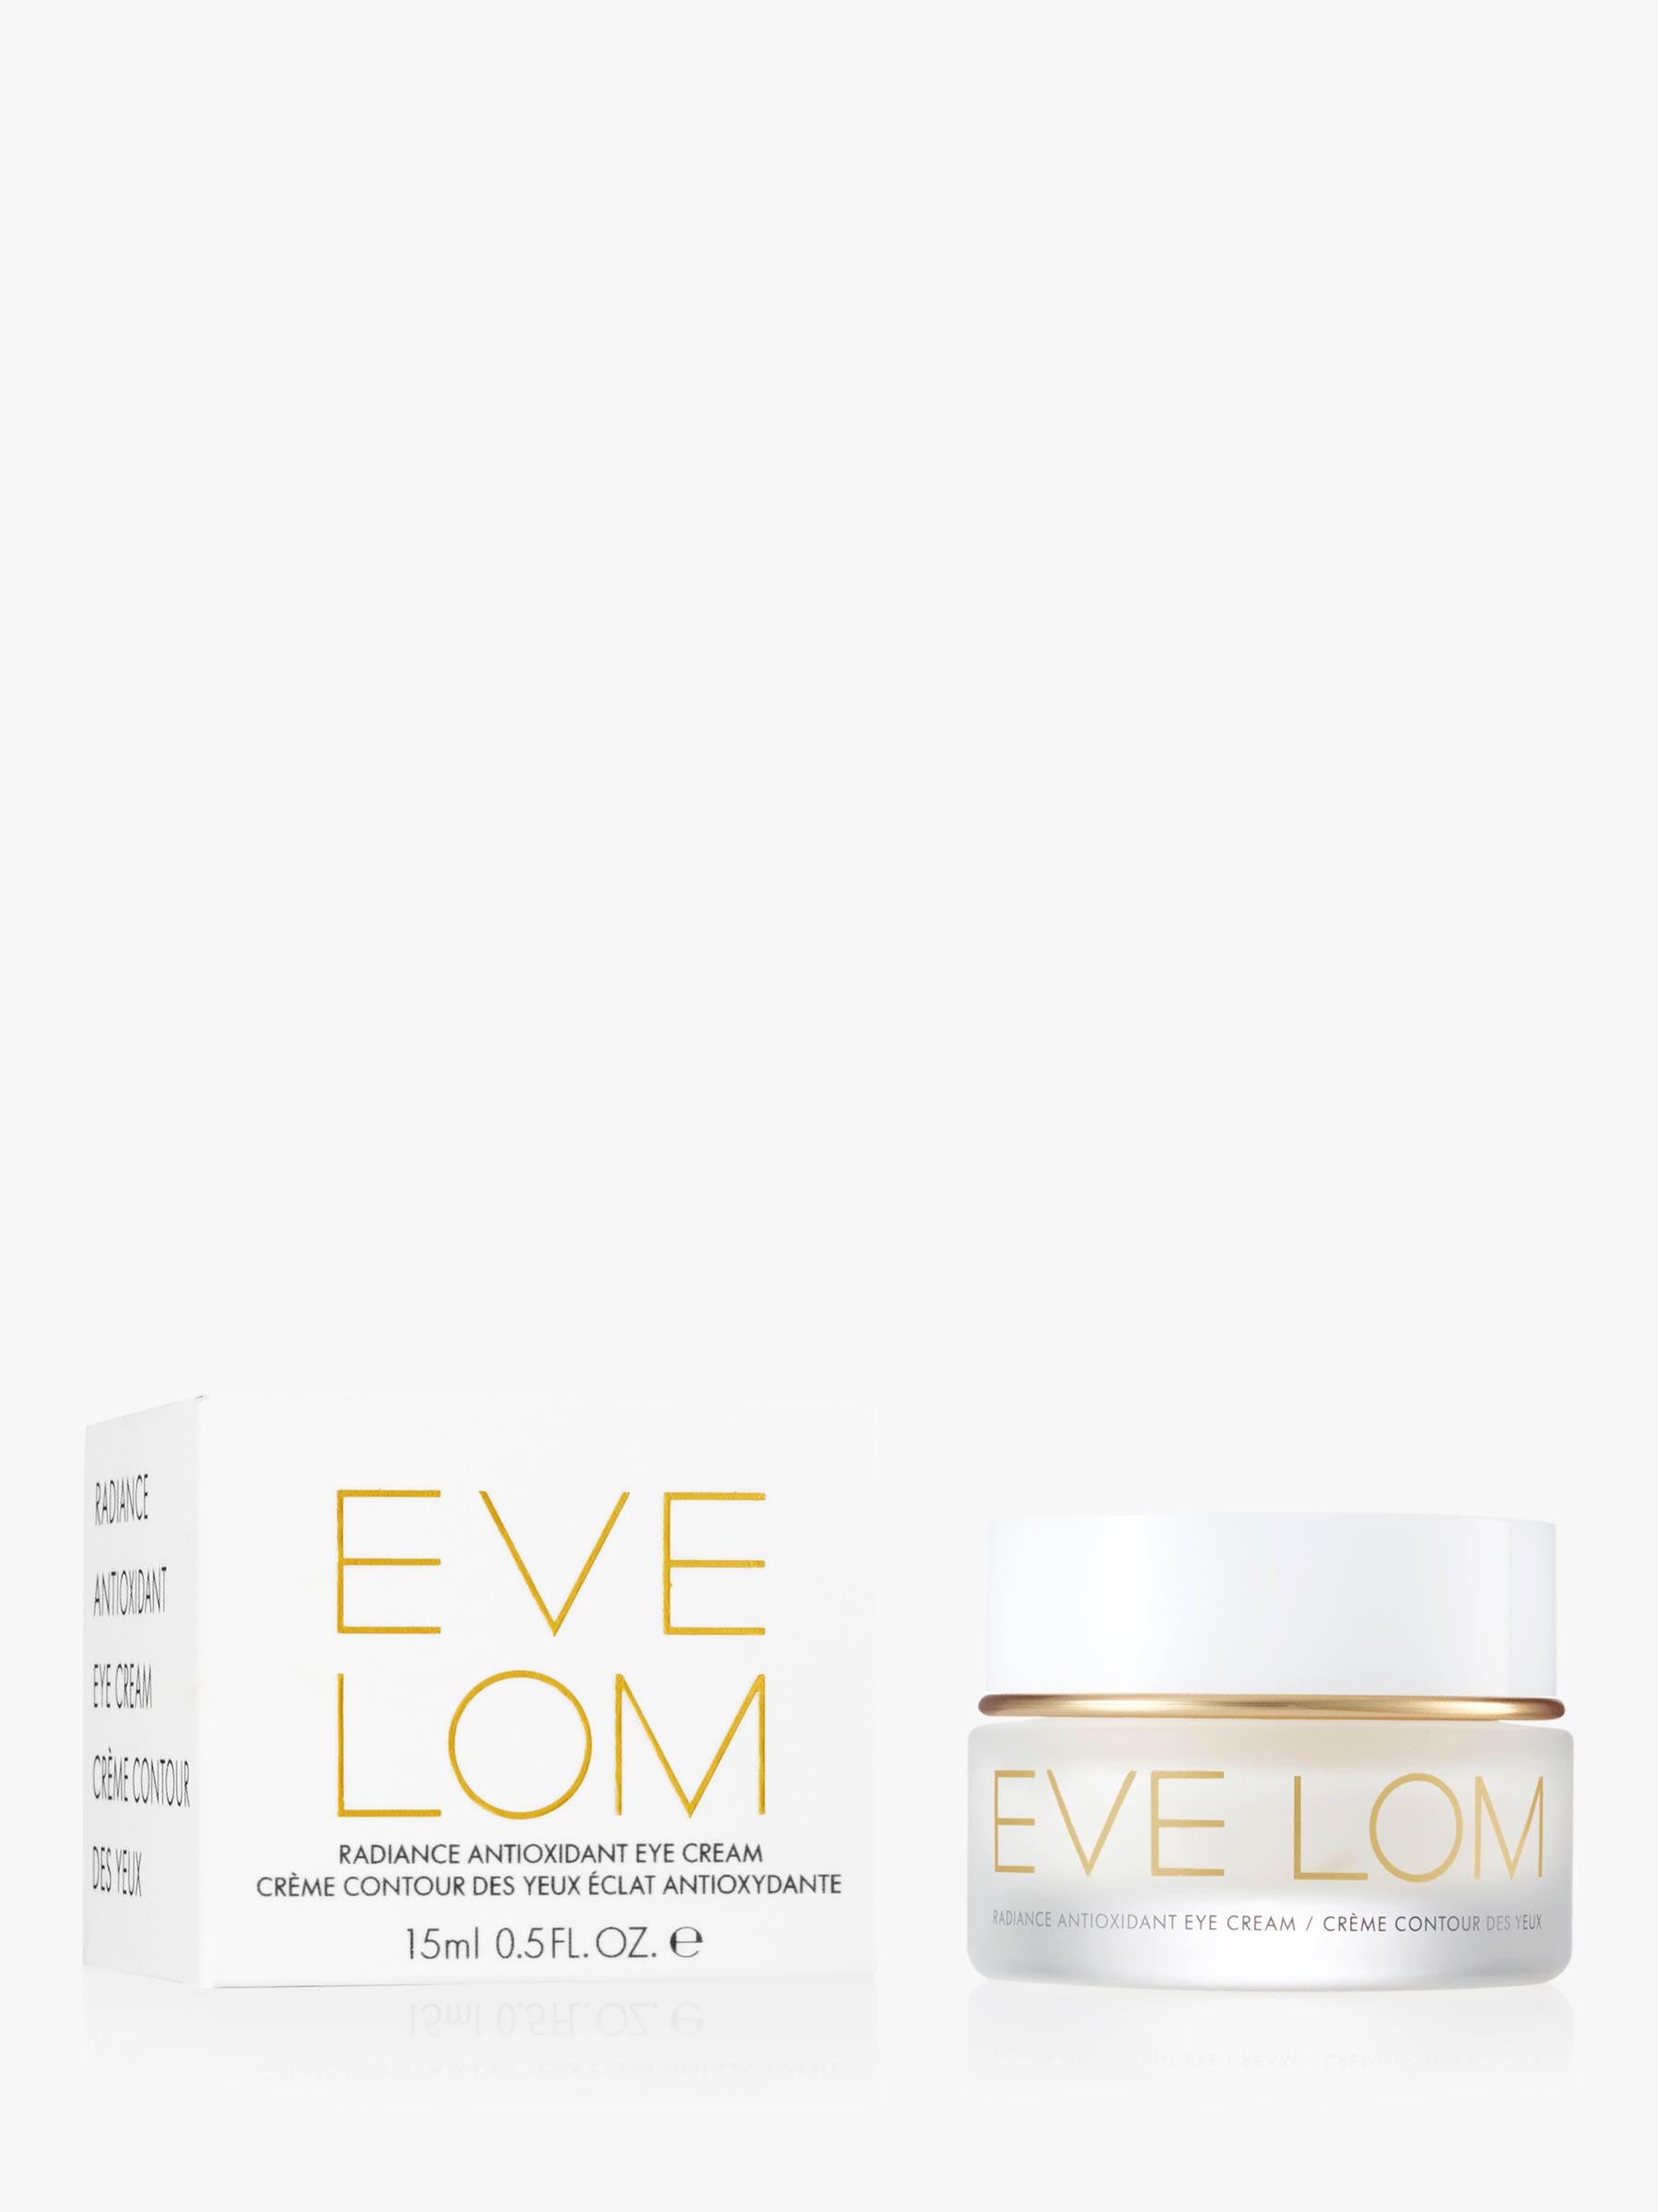 Eve Lom Eve Lom Radiance Antioxidant Eye Cream, 15ml